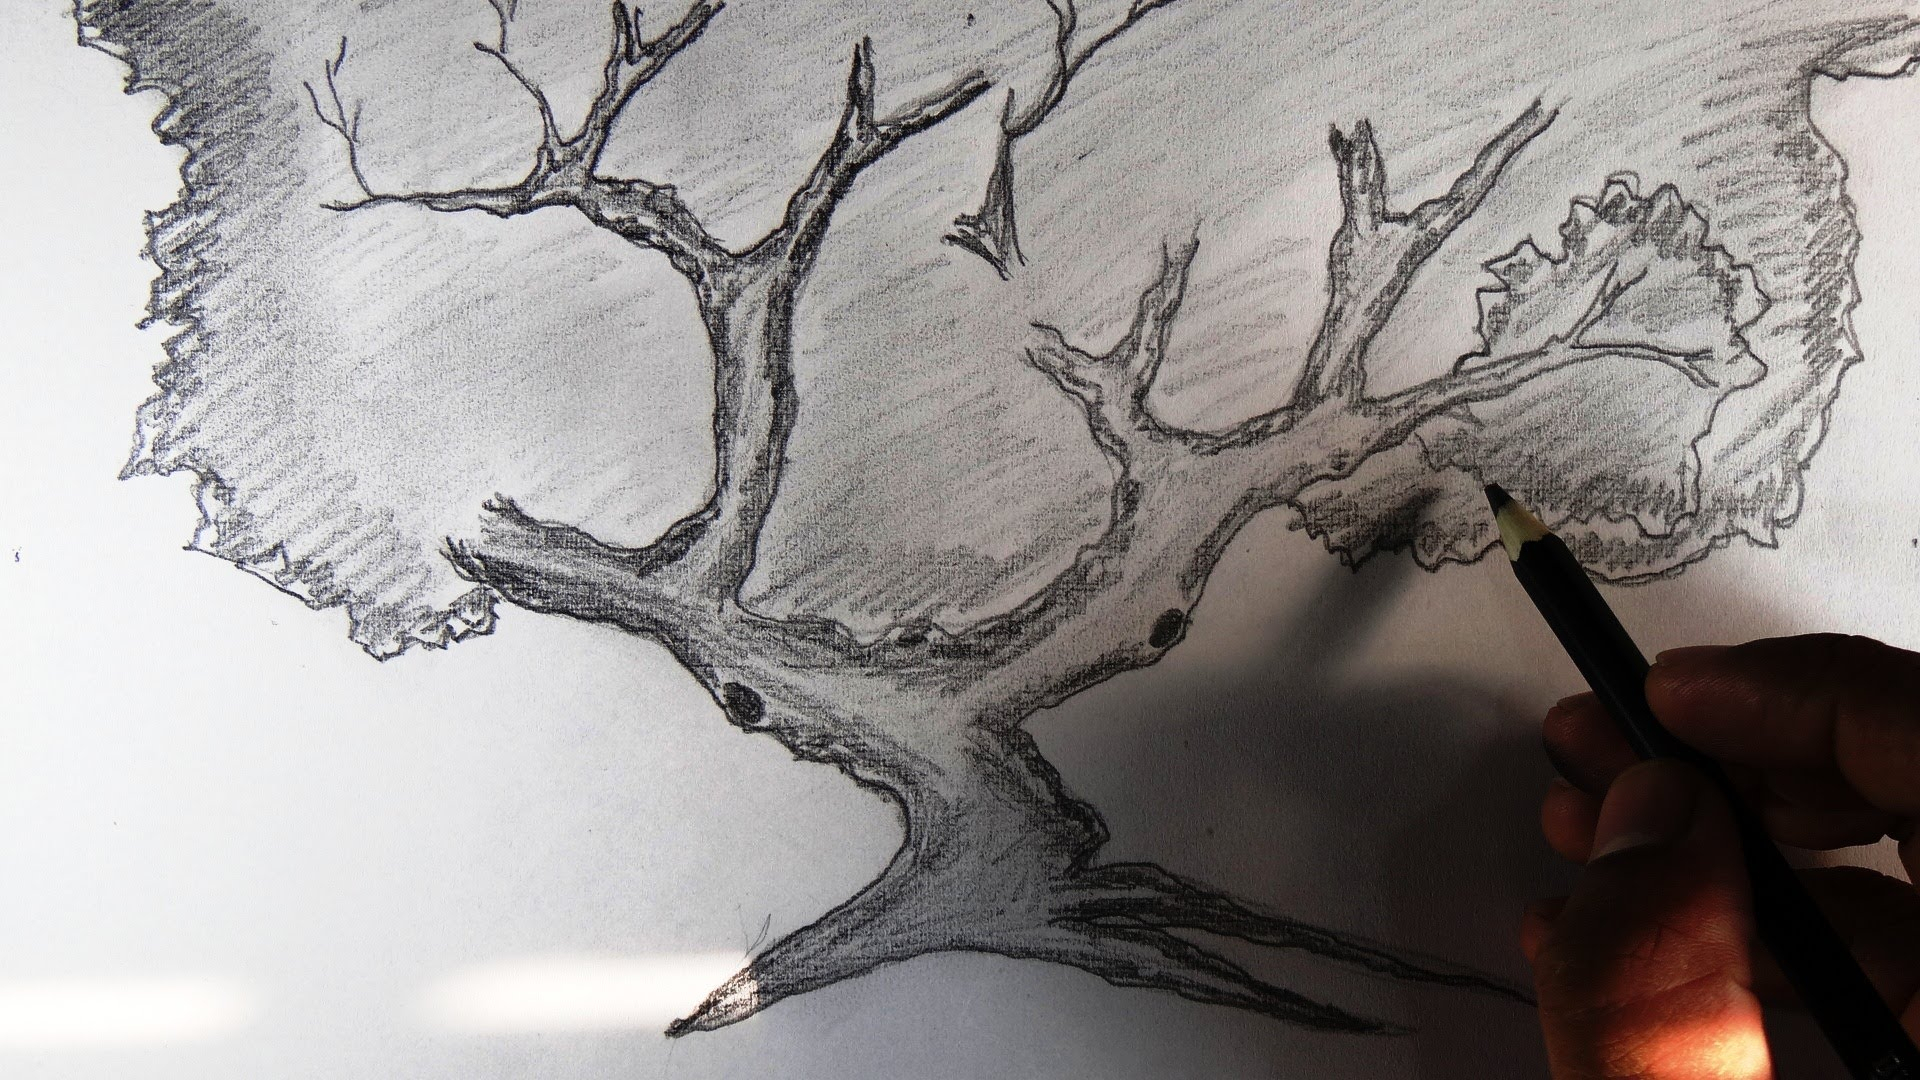 1920x1080 Pencil Sketch Of Neem Tree How To Draw A Palm Tree In Pencil